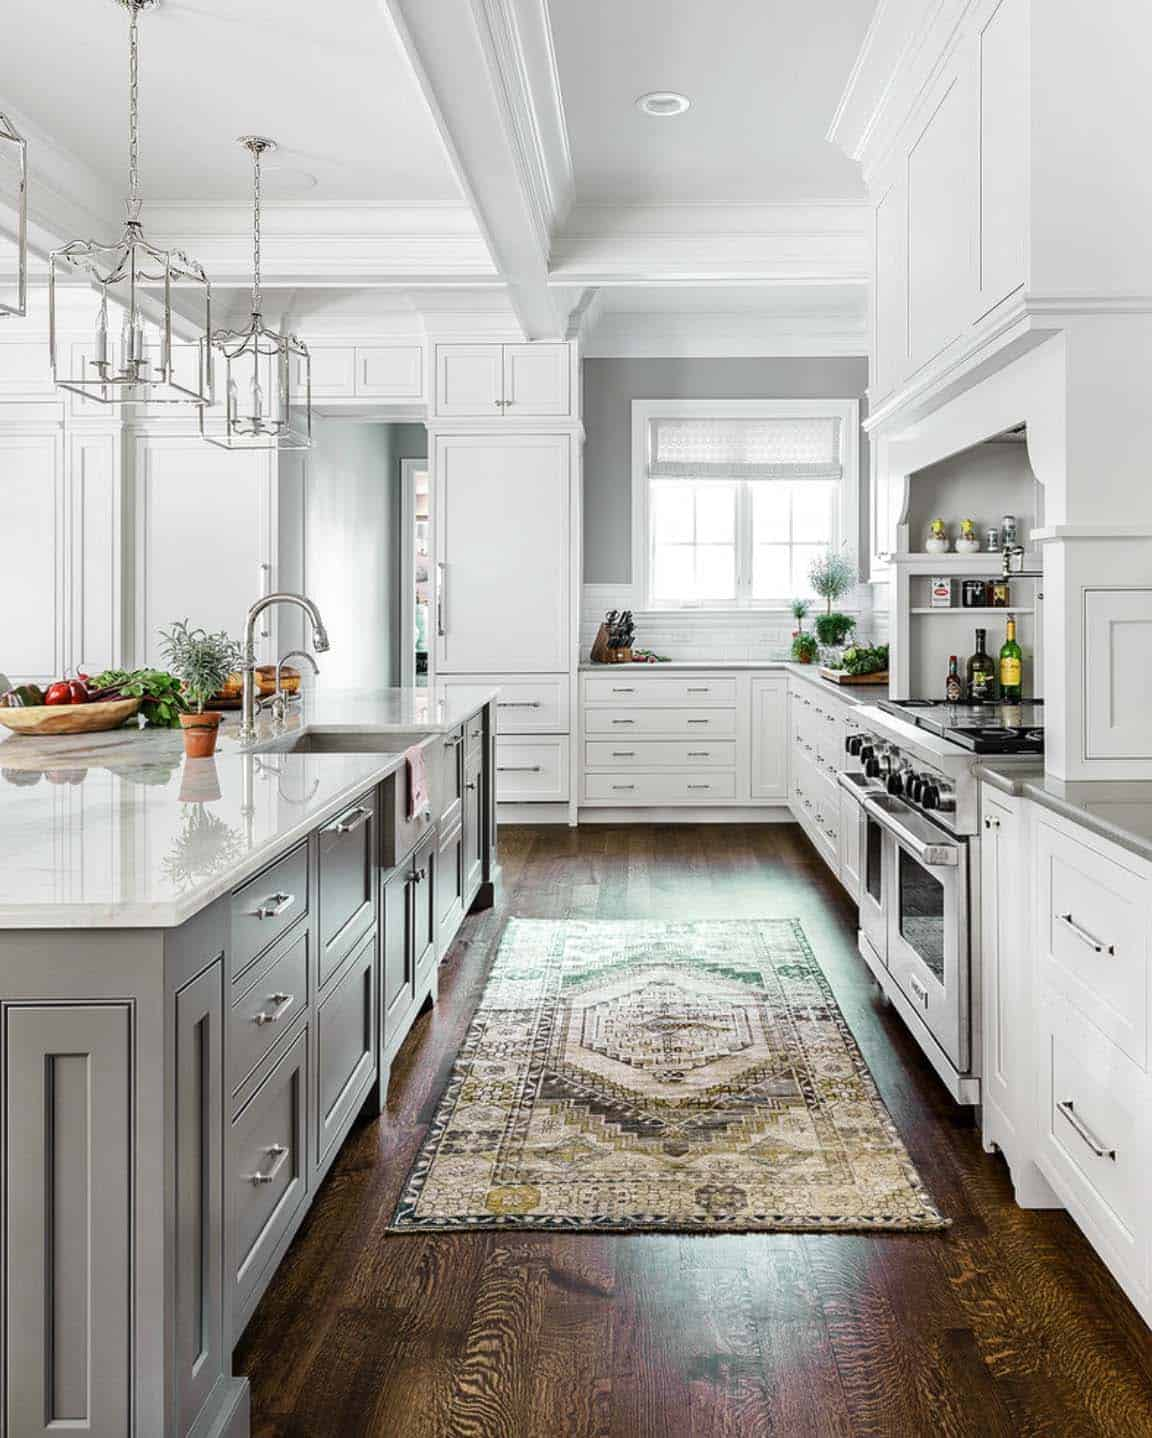 28 Antique White Kitchen Cabinets Ideas In 2019: 30+ Beautiful And Inspiring Light-filled Kitchens With